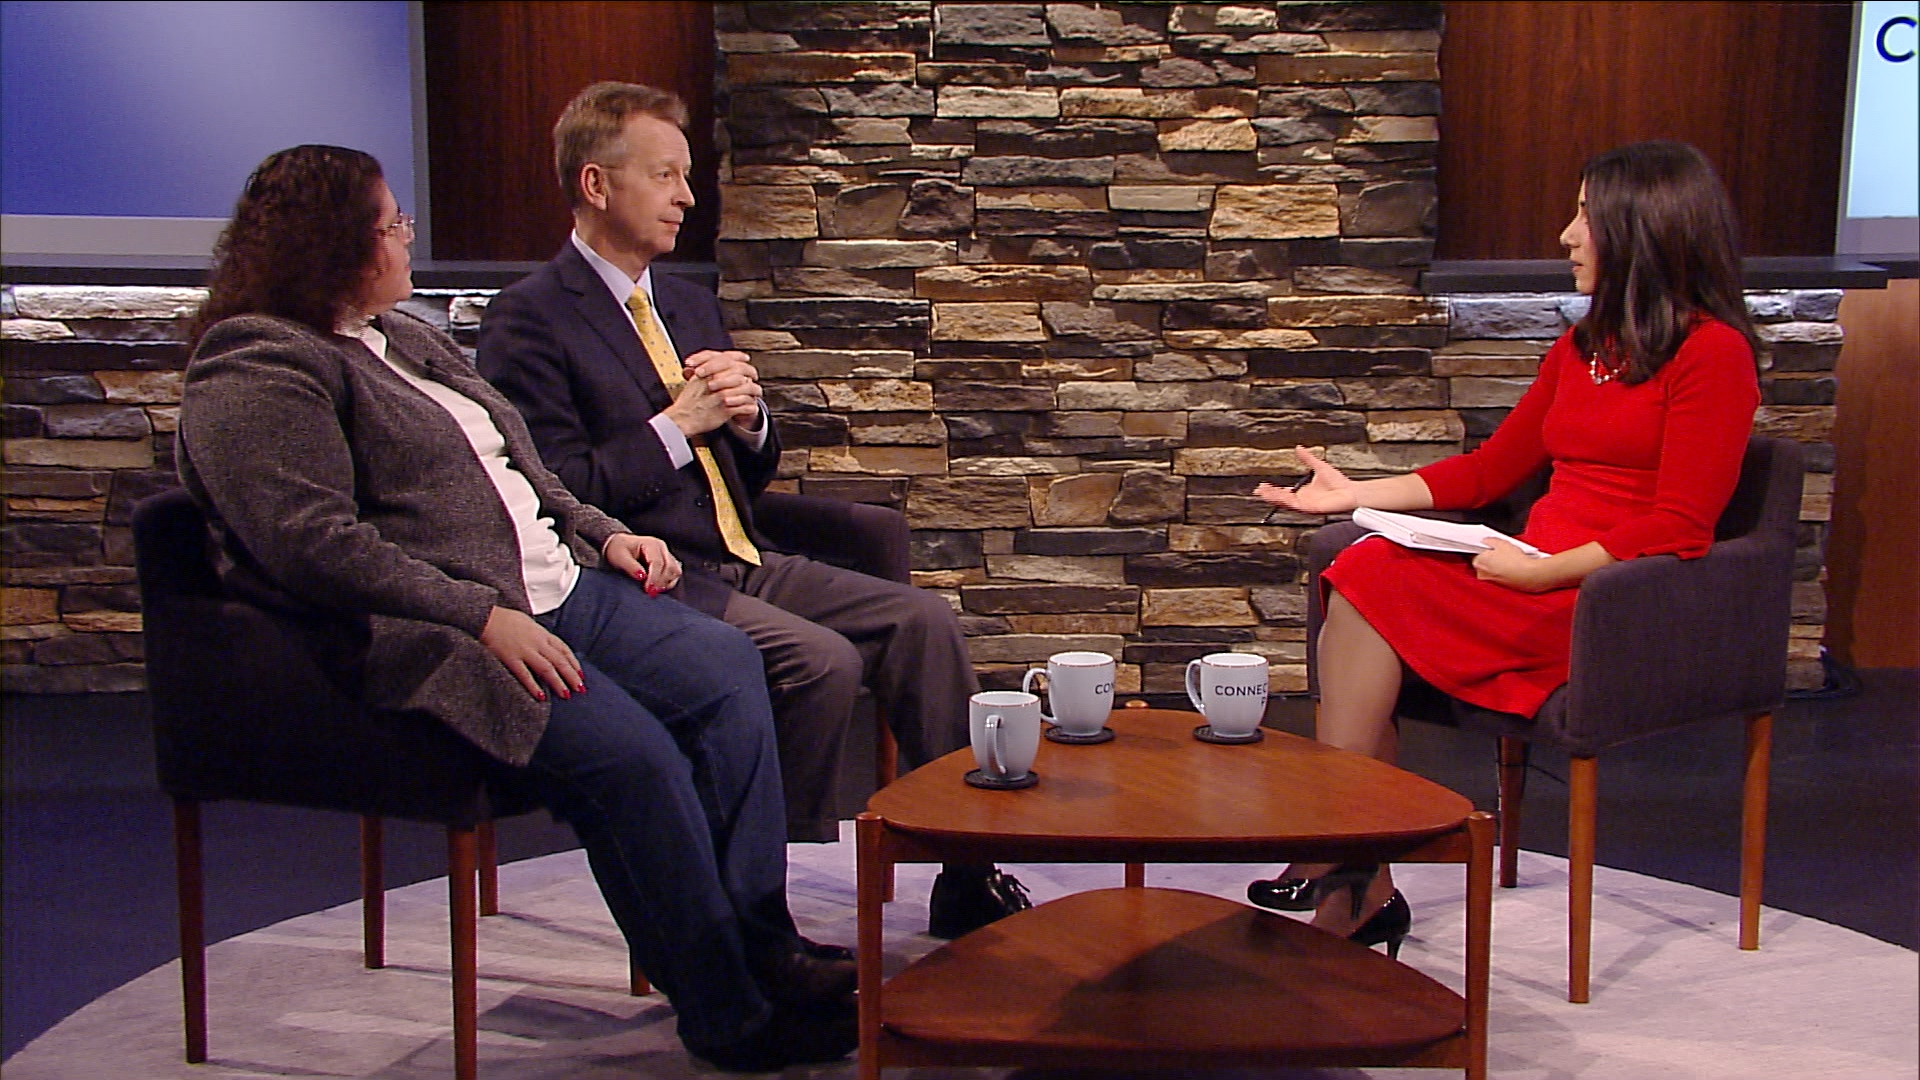 Retail Association of MA's Jon Hurst and small business owner Judy Herrell discuss the impact the new health care fee will have on small businesses.